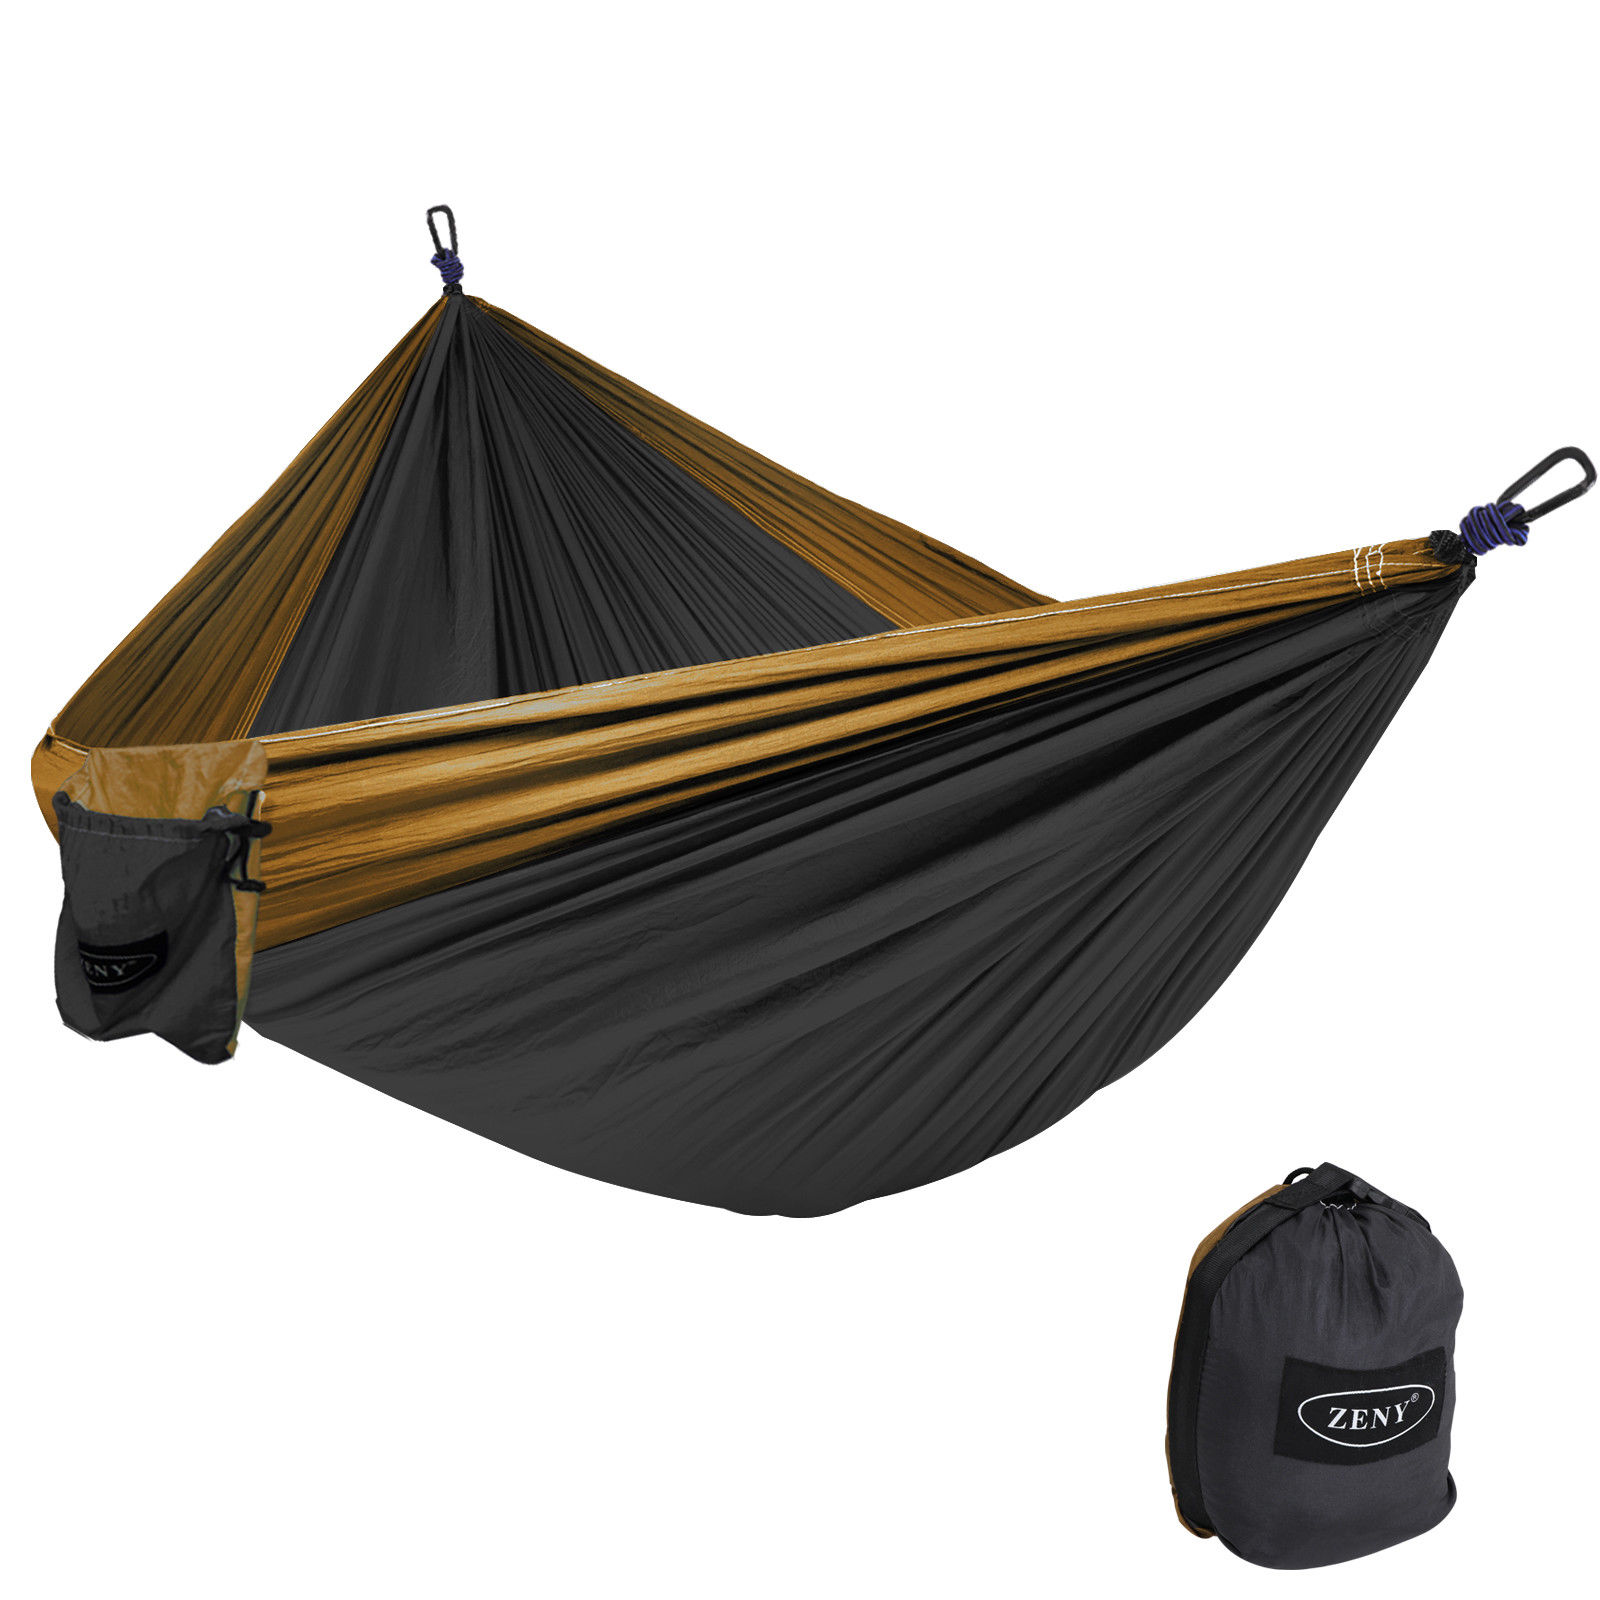 Friendly Portable High Strength Parachute Fabric Camping Hammock Hanging Bed With Mosquito Net Sleeping Hammock Fragrant In Flavor